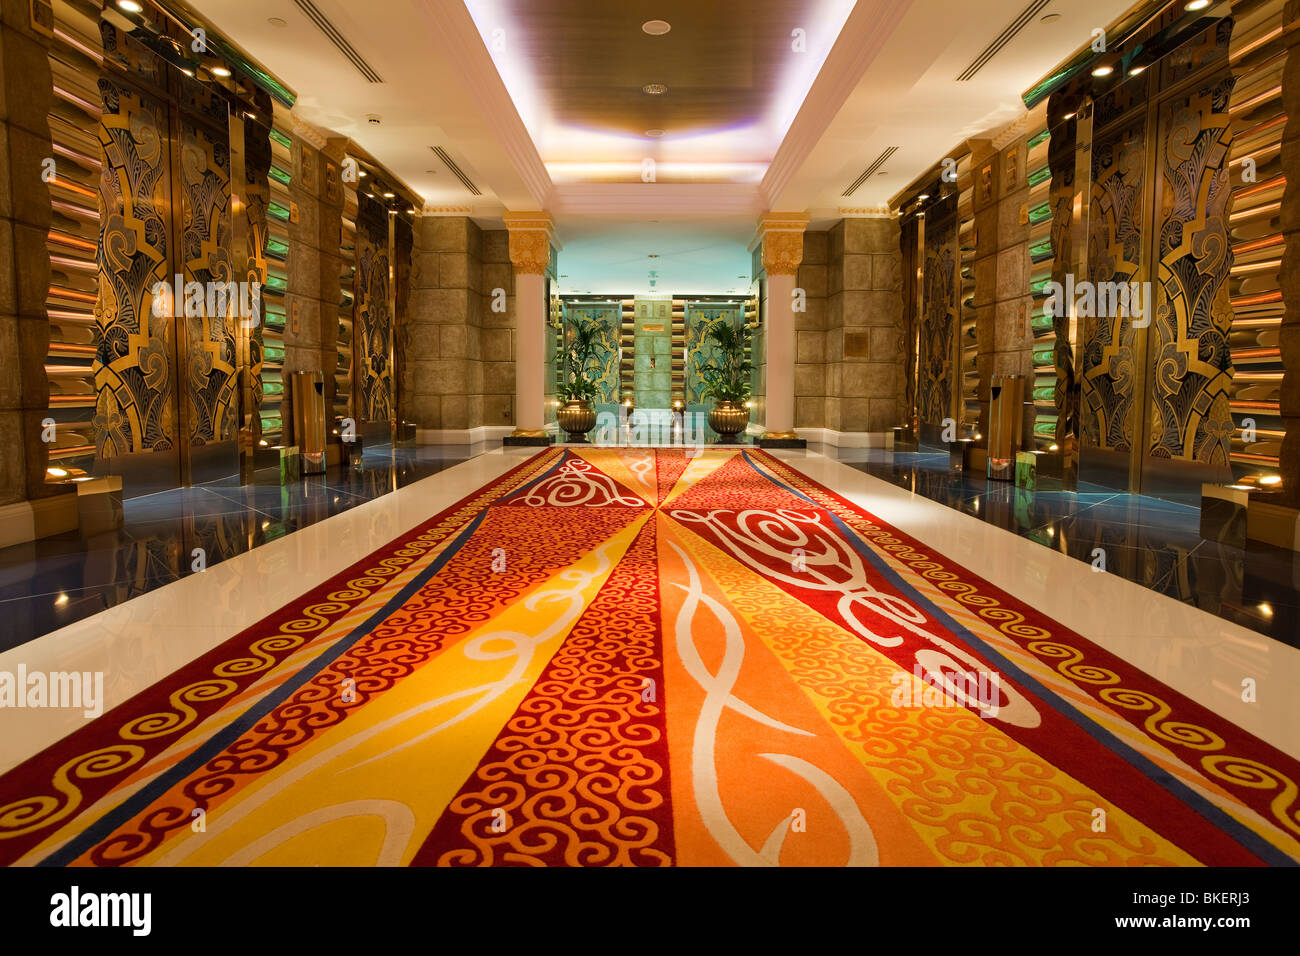 Burj Al Arab Hotel, Dubai, UAE, United Arab Emirates - Stock Image